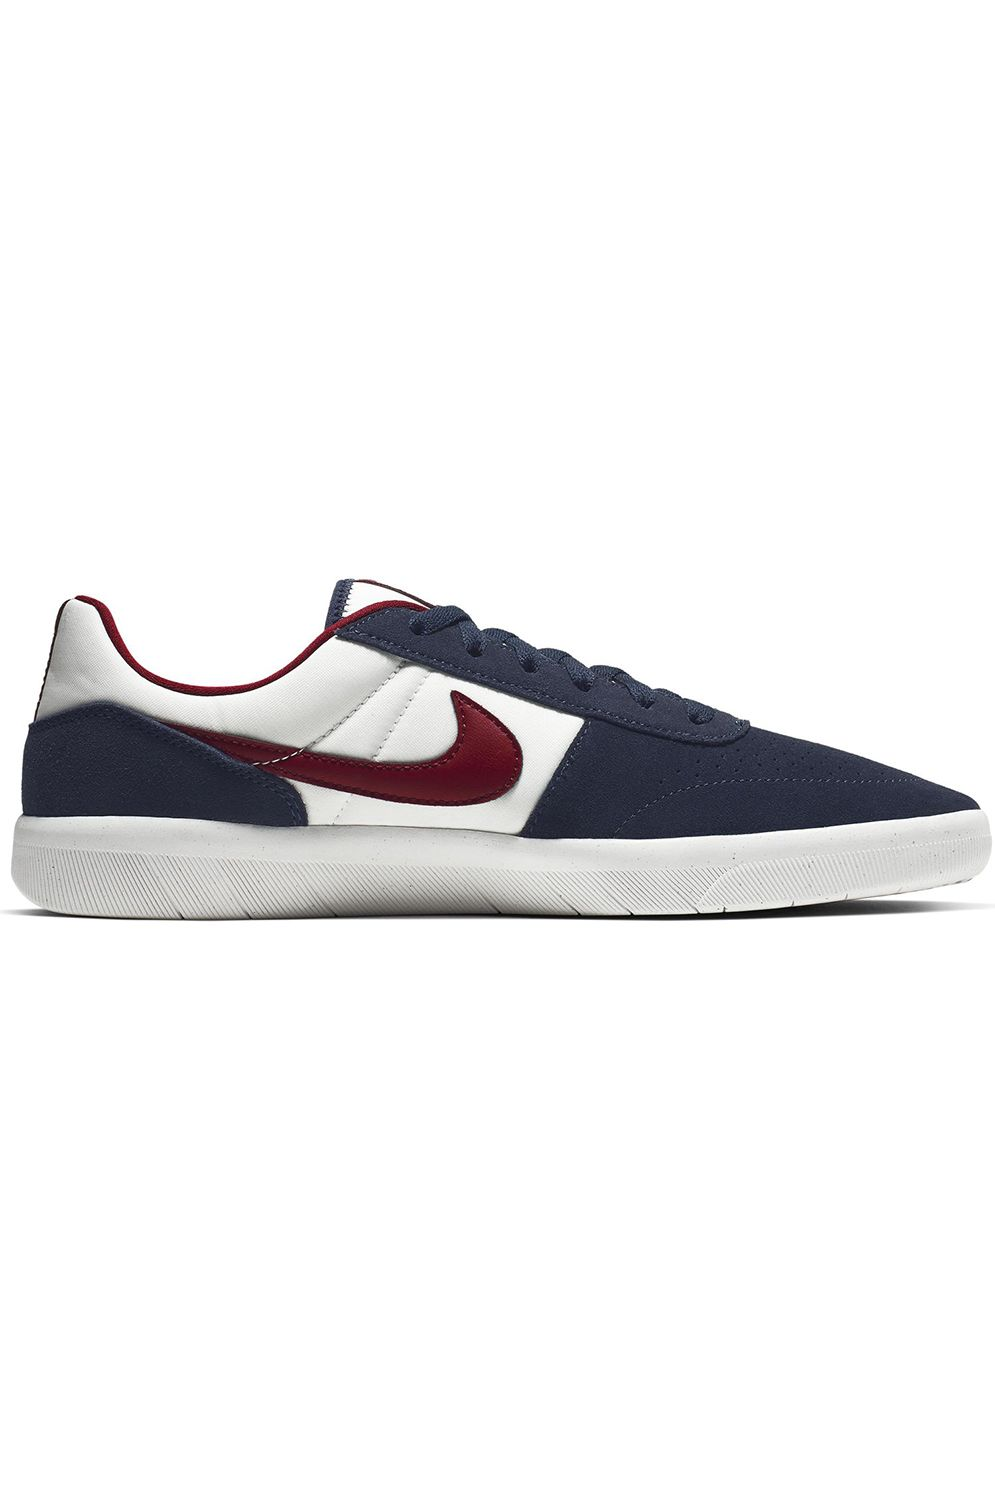 Tenis Nike Sb TEAM CLASSIC Obsidian/Team Red-Summit White